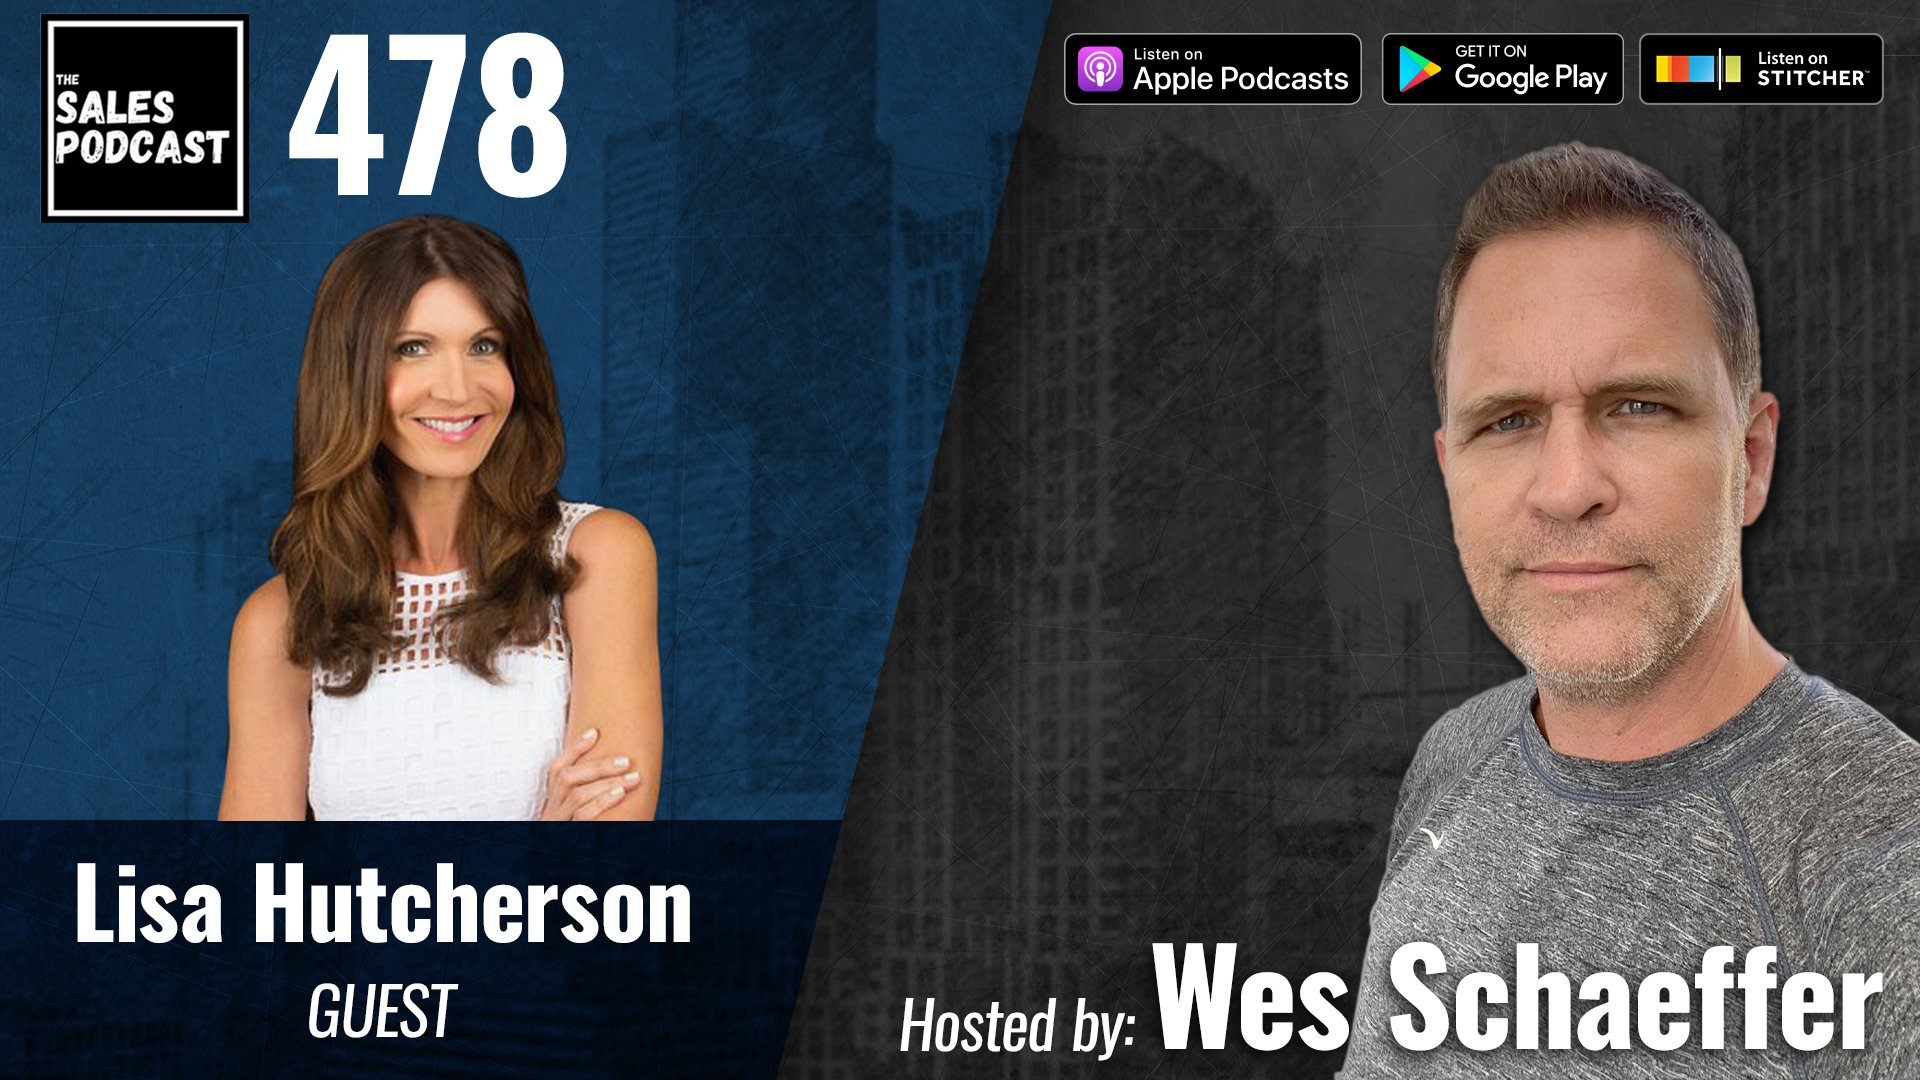 Marketing To The Affluent In Dating, Selling, & Life: Lisa Hutcherson on The Sales Podcast with Wes Schaeffer, The Sales Whisperer®